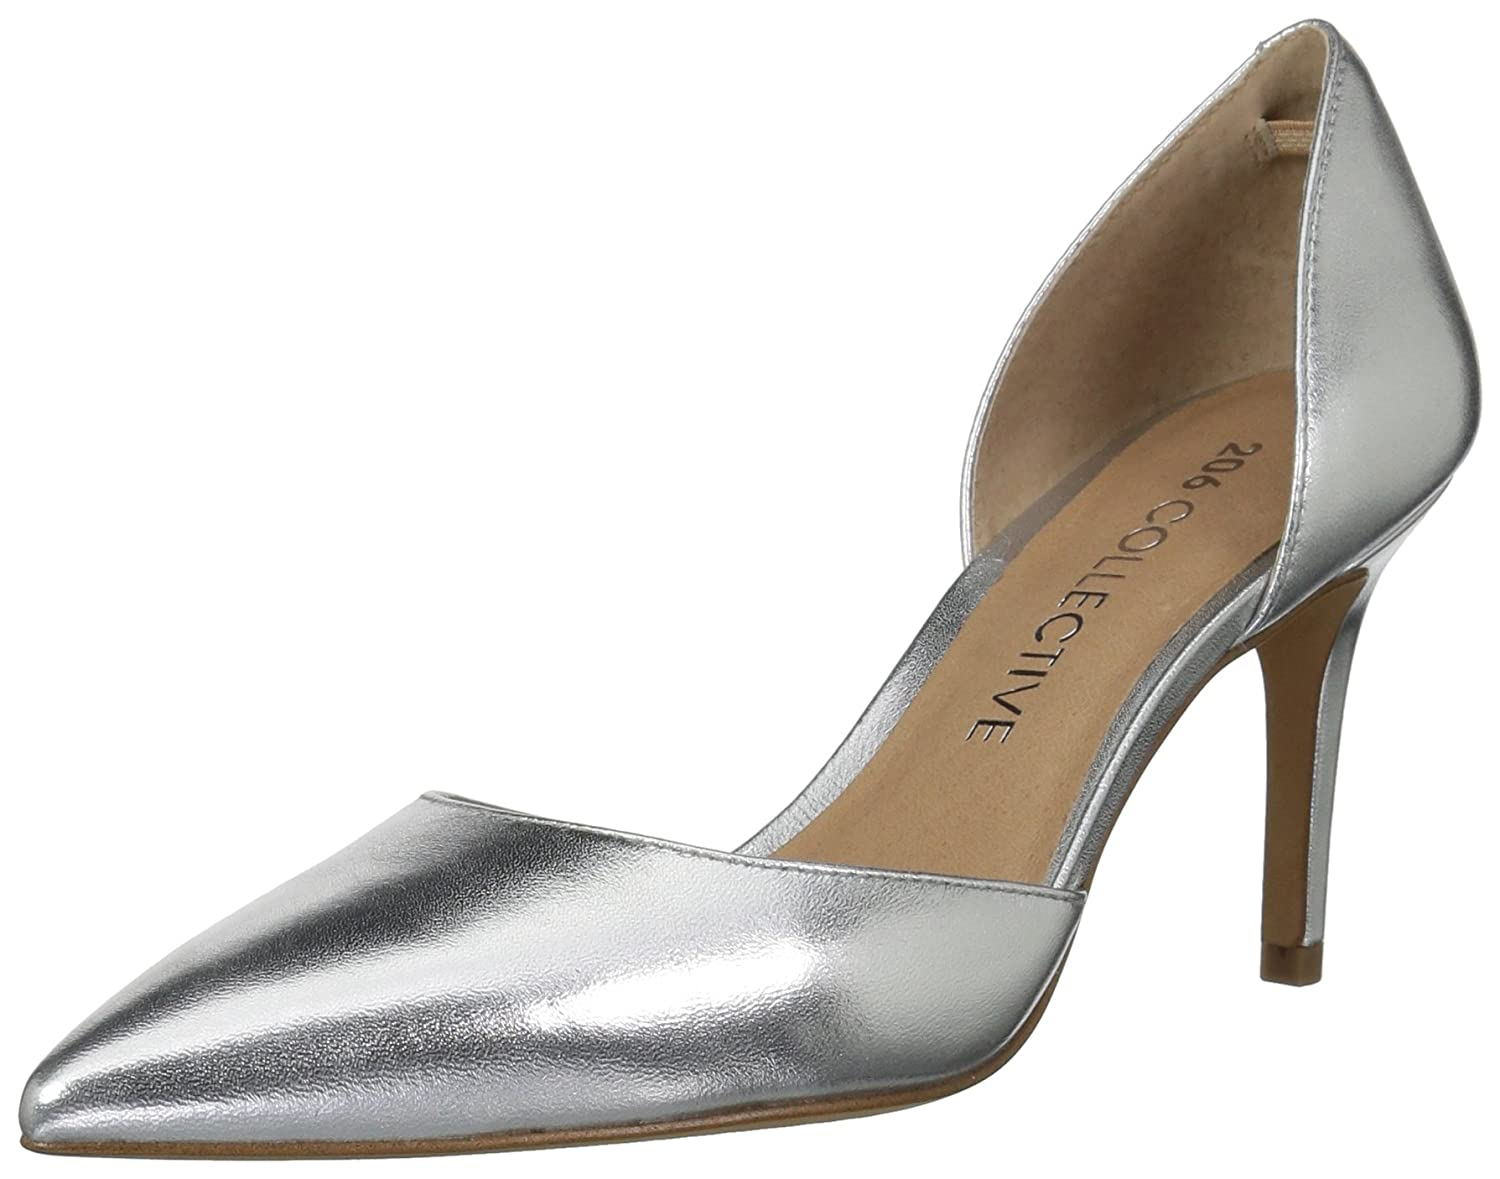 206 Collective Women's Adelaide D'Orsay Dress Pump B07895SMJP 5 B(M) US|Silver Leather